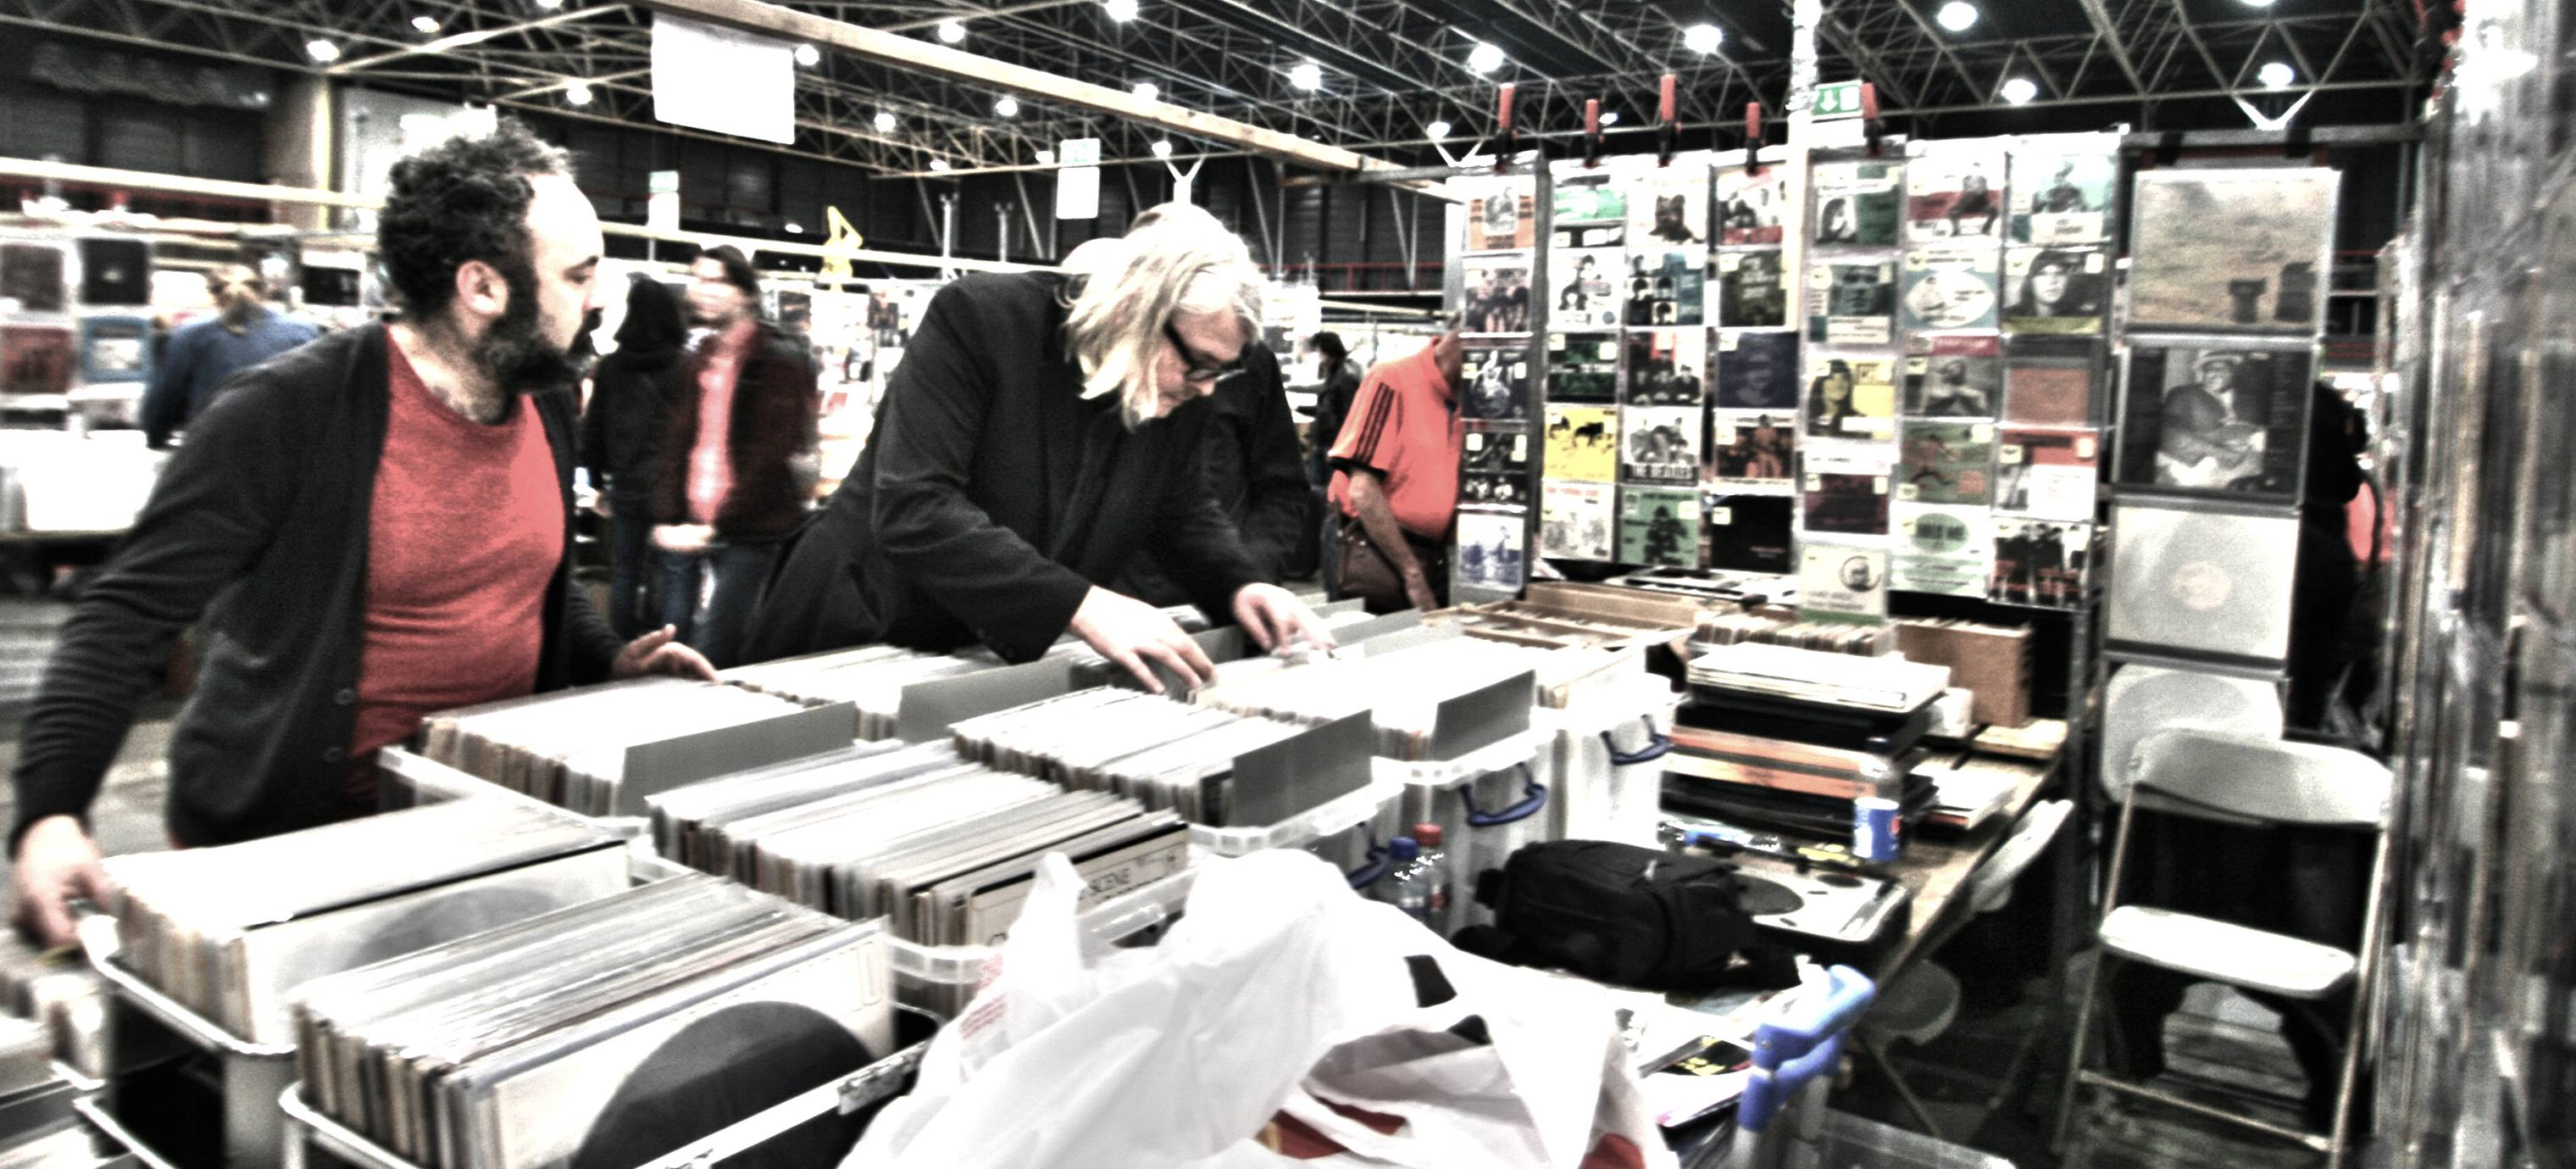 Record Convention in Jaarbeurs, Utrecht with Lars Rørbæk